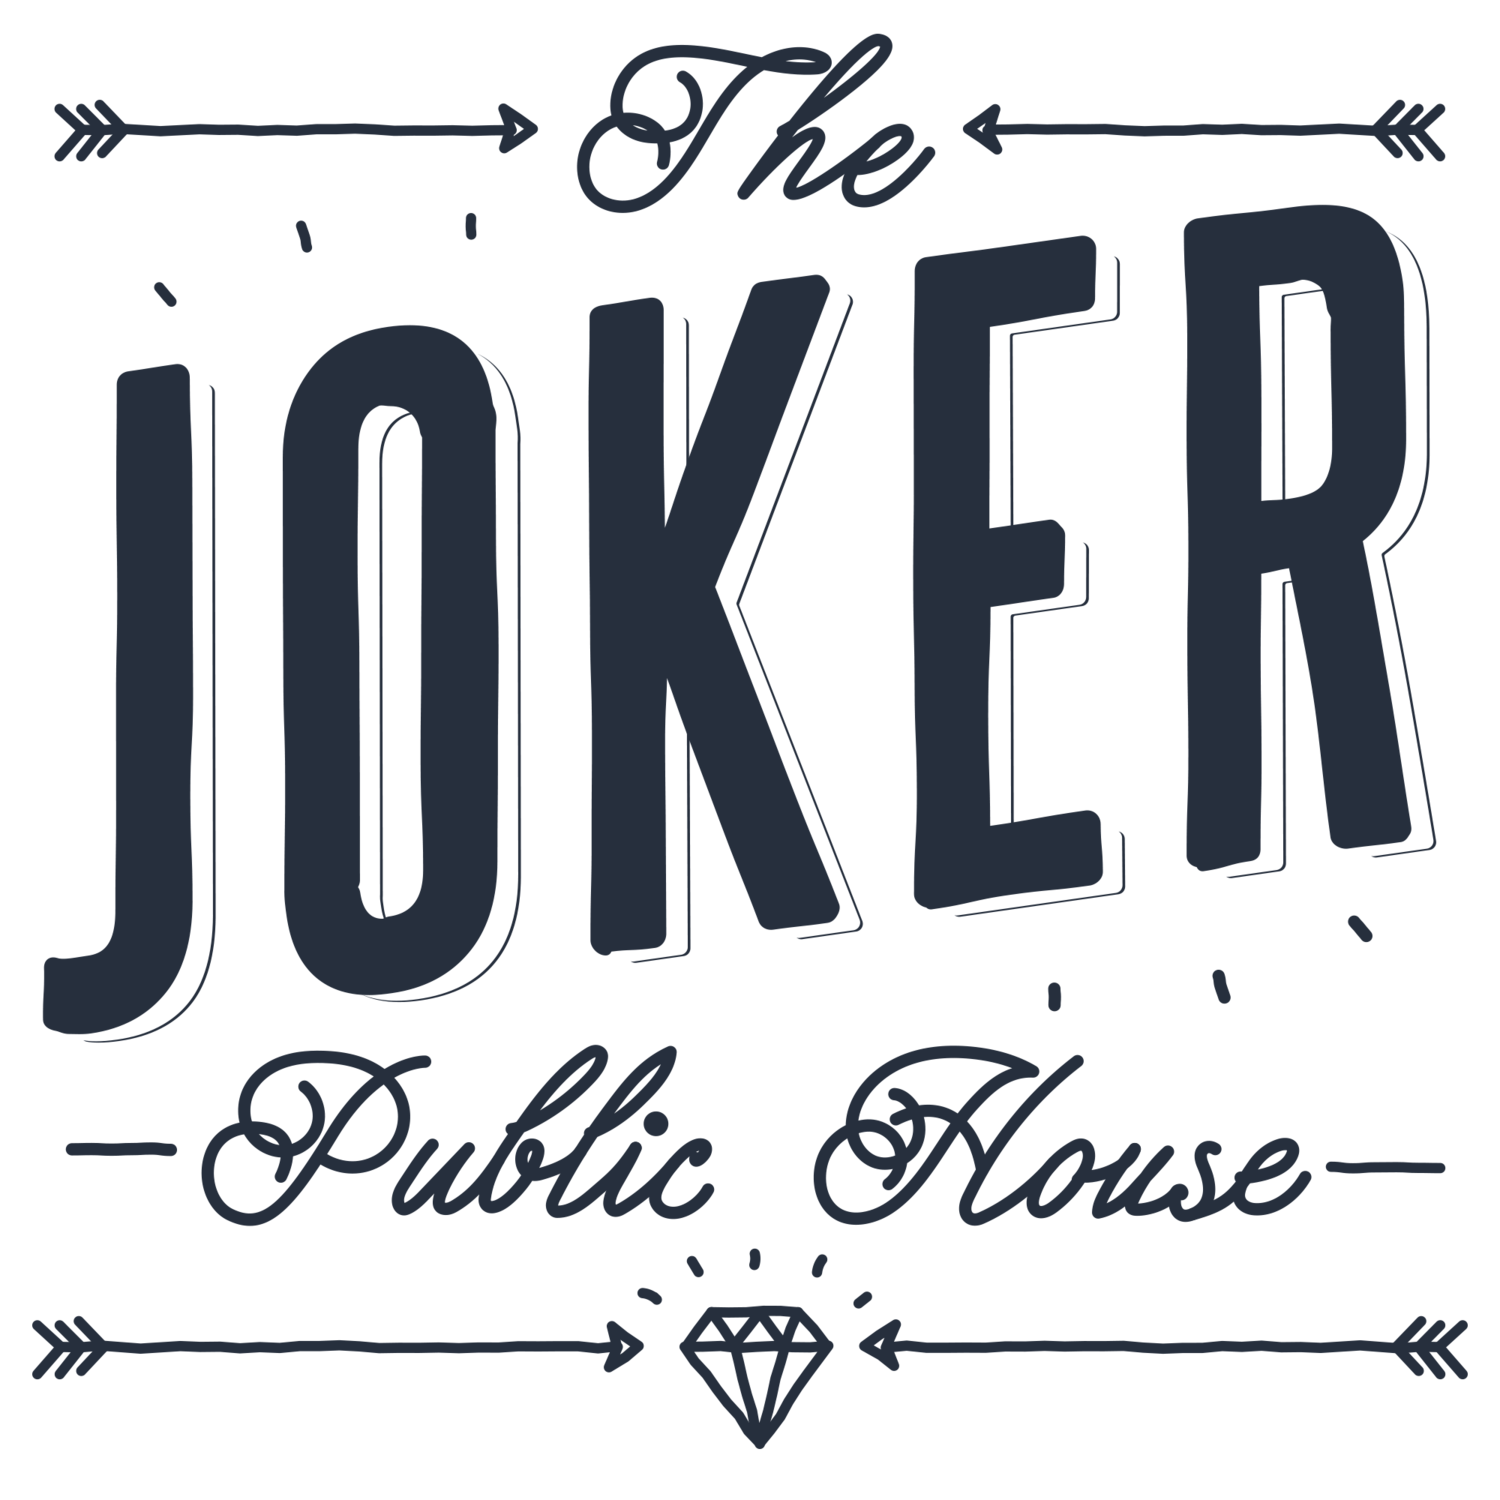 The Joker Pub | Croydon